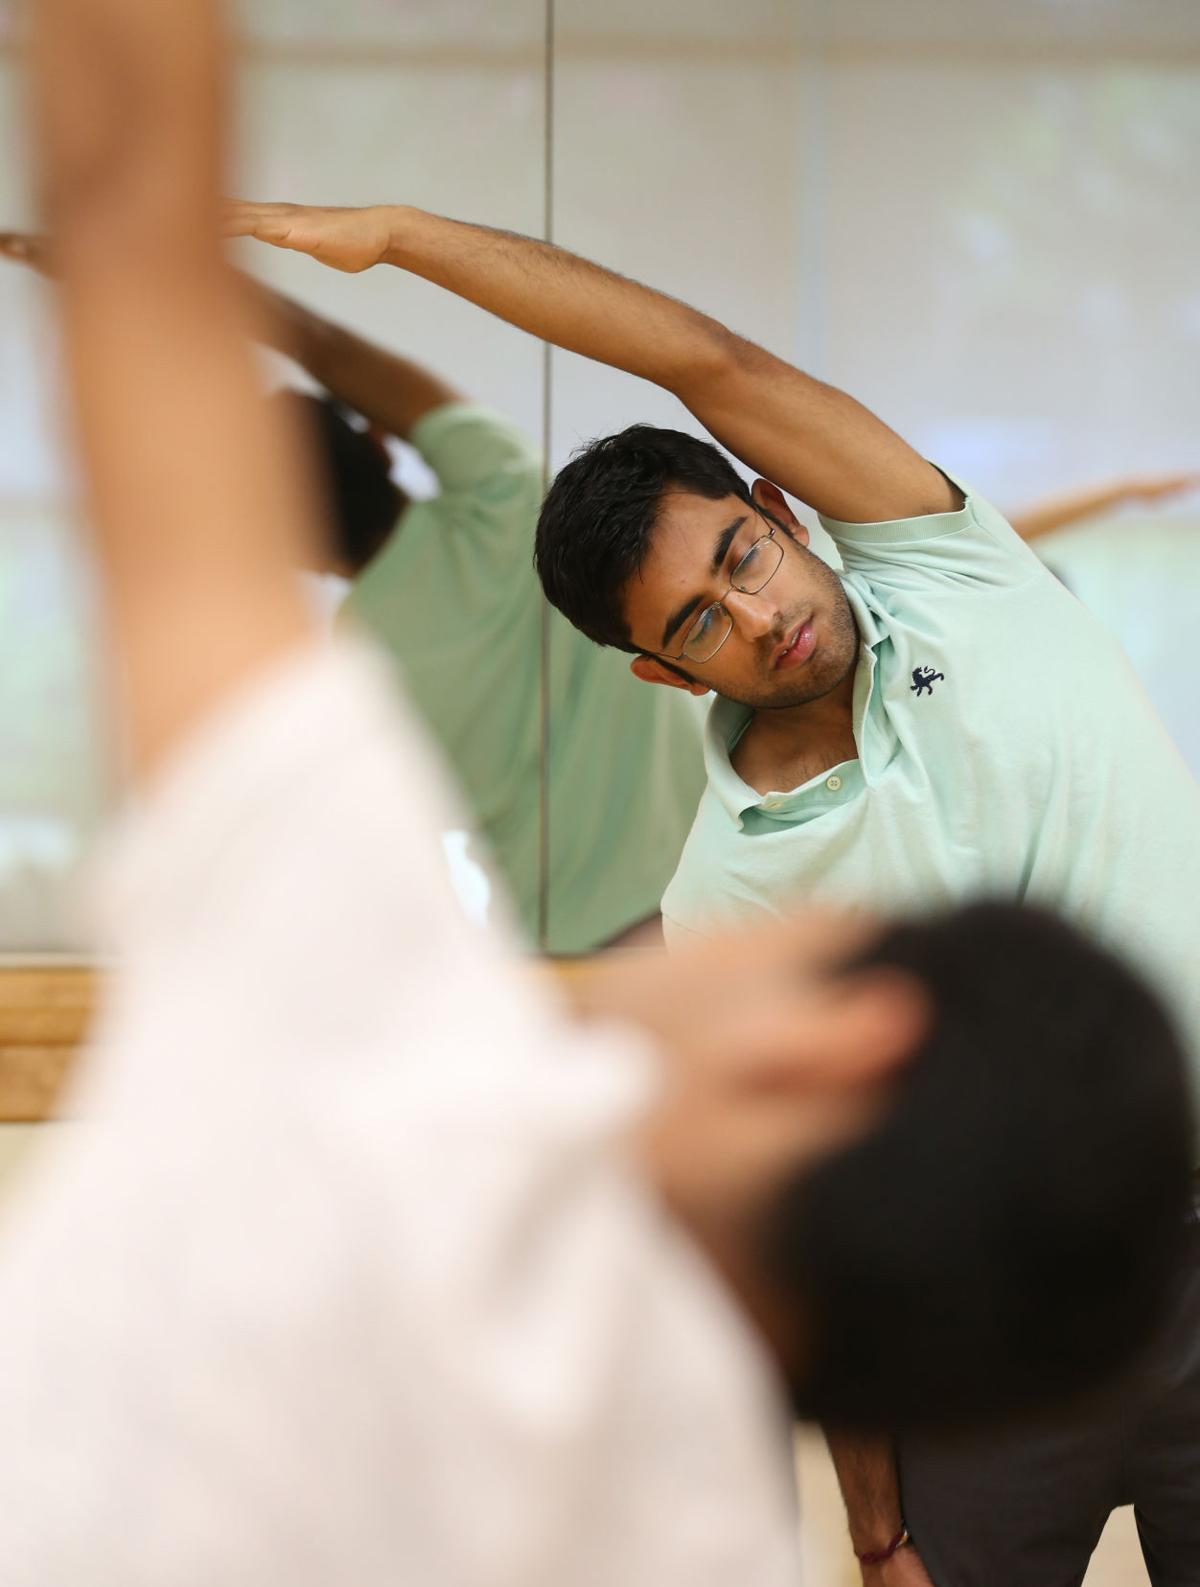 Graduate students find relief, community at meditation club